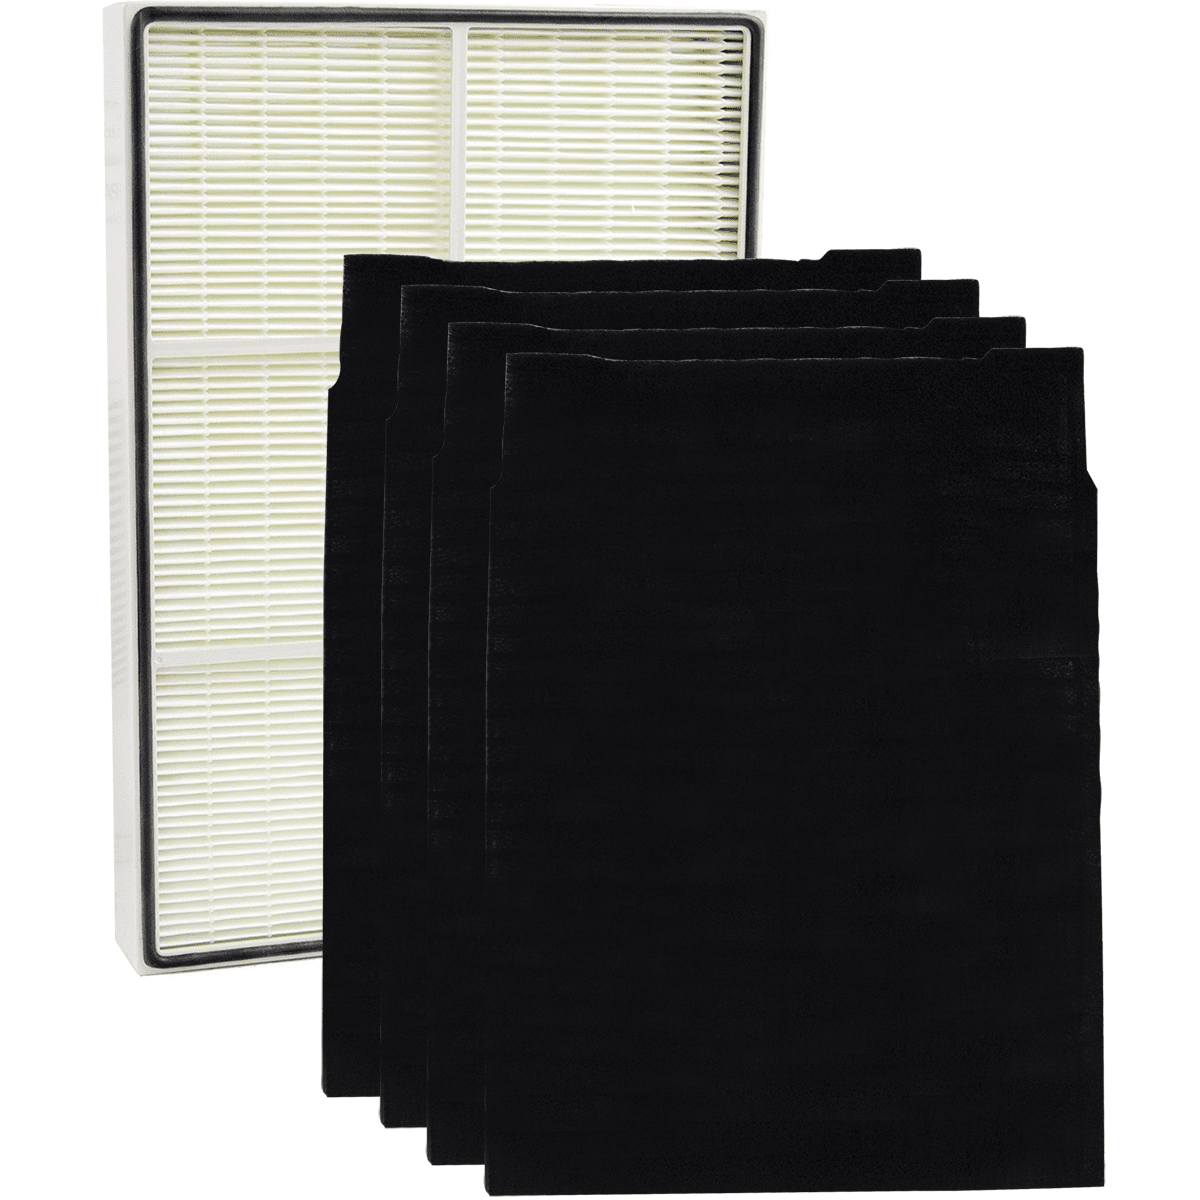 Whirlpool 250 & 150 Filter Kit - Small (1-Year Supply) wh2450k